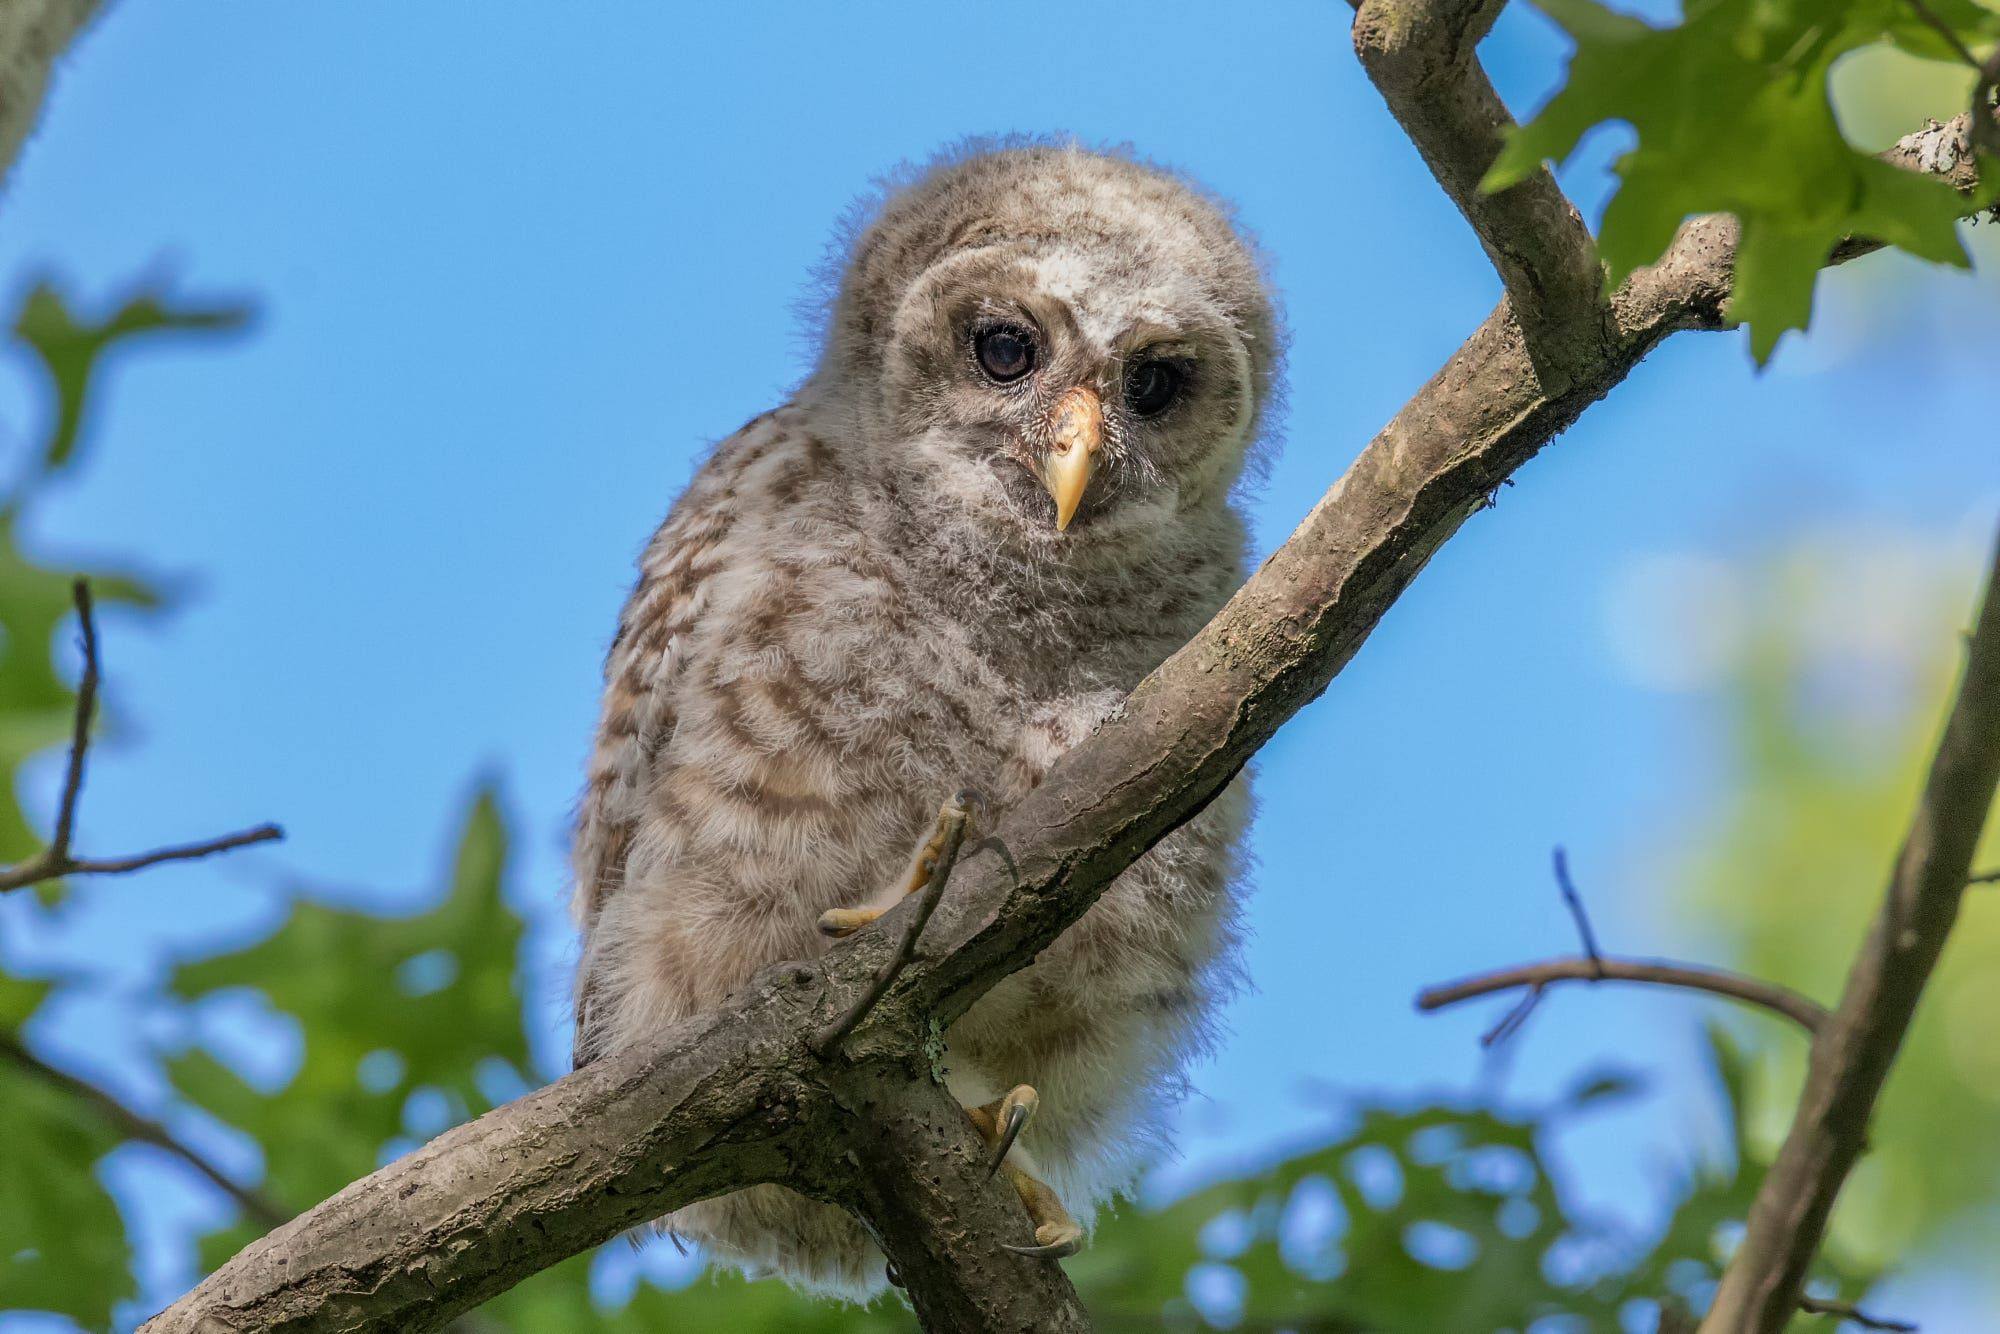 Barred Owl owlet  by Nick Jaramillo on 500px